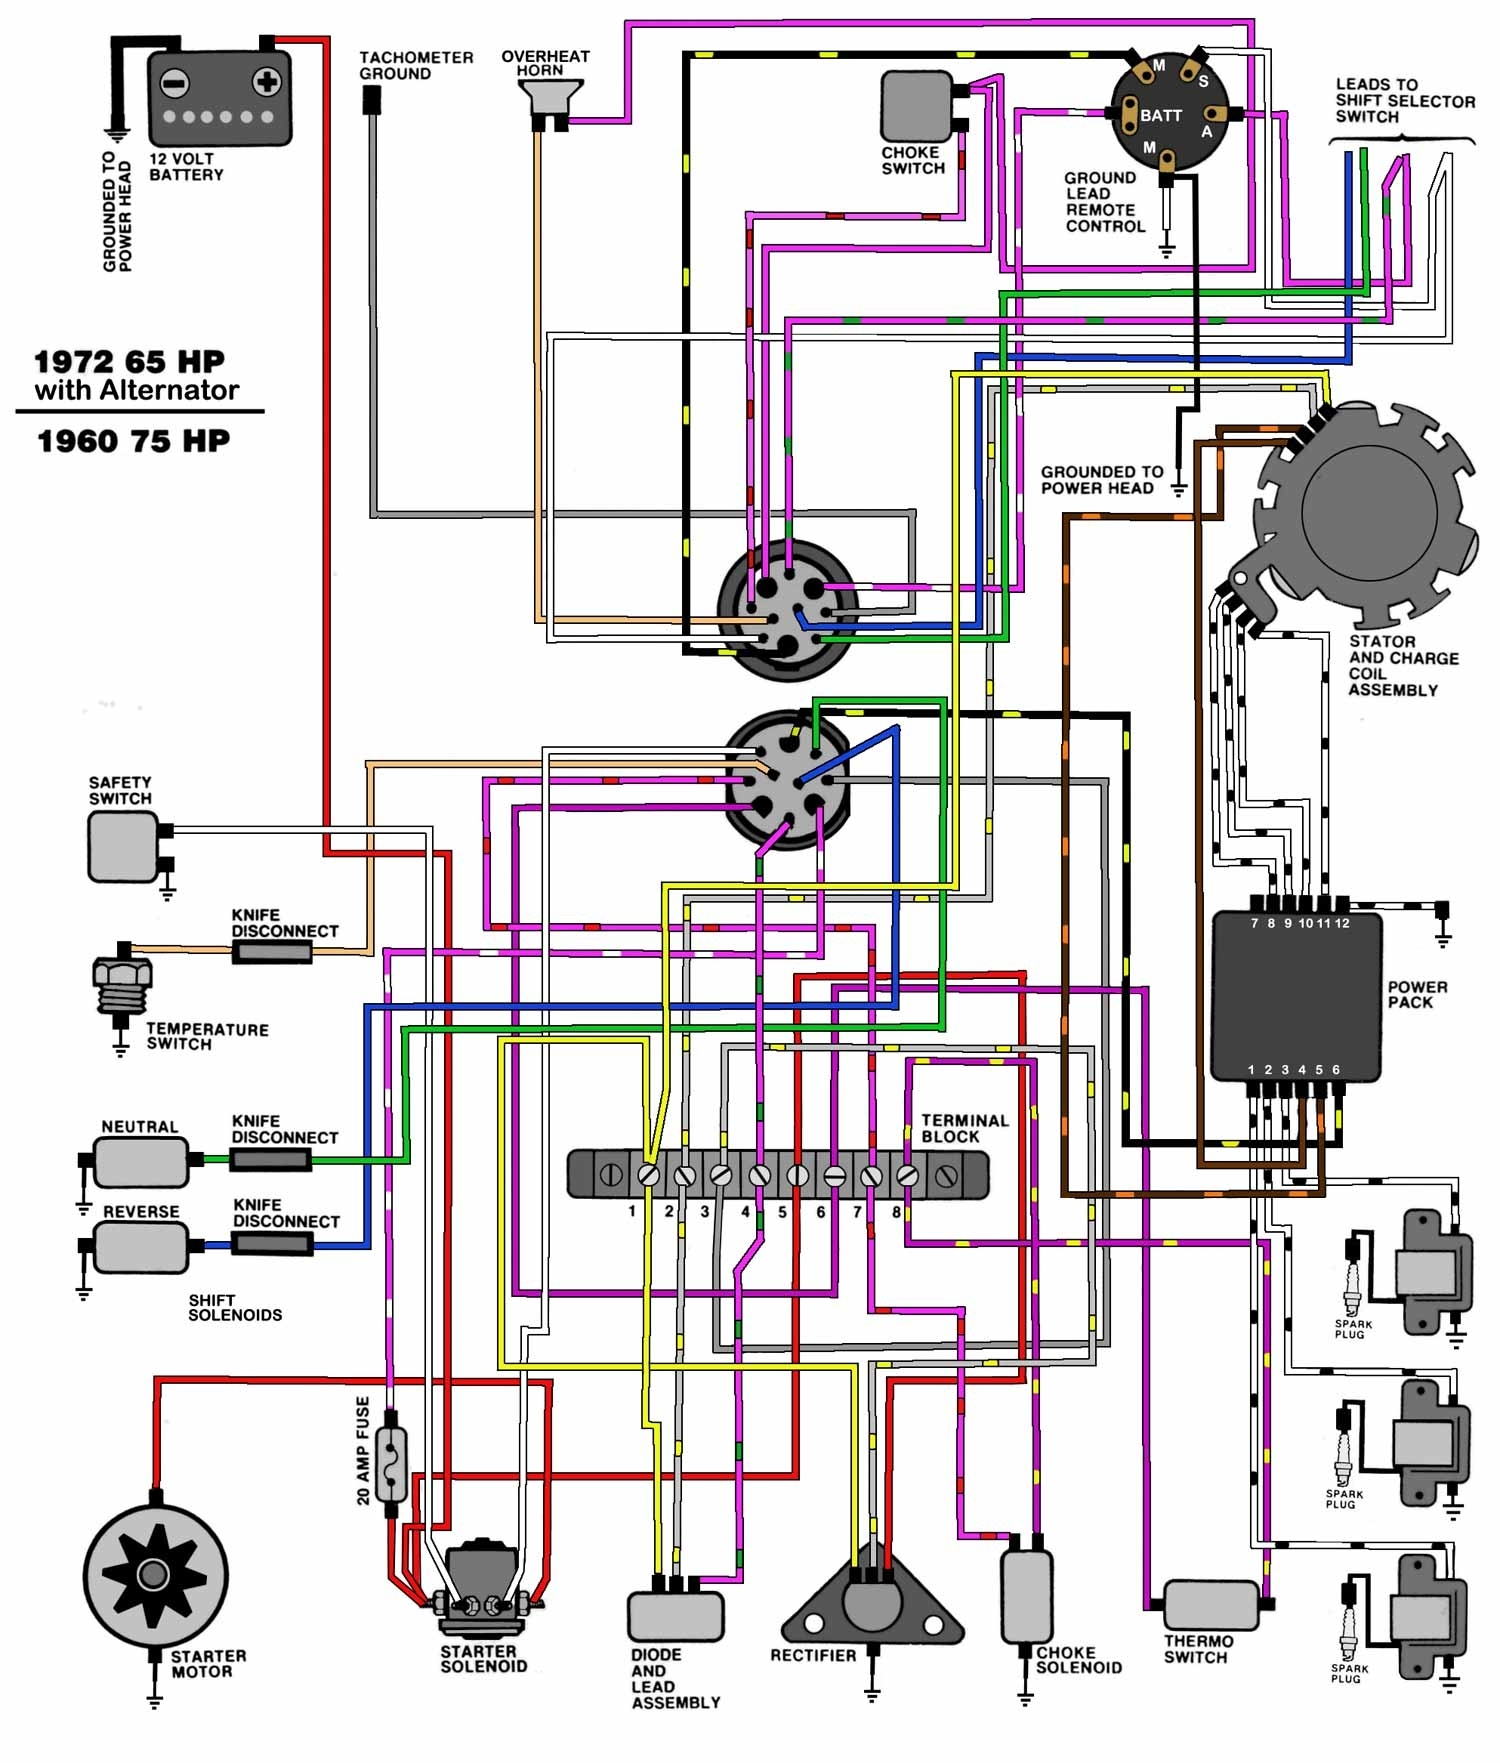 mastertech marine evinrude johnson outboard wiring diagrams for 70 hp evinrude wiring diagram?resize=665%2C782&ssl=1 1993 evirude 50 wiring diagram 1993 wiring diagrams collection Basic Electrical Wiring Diagrams at mifinder.co